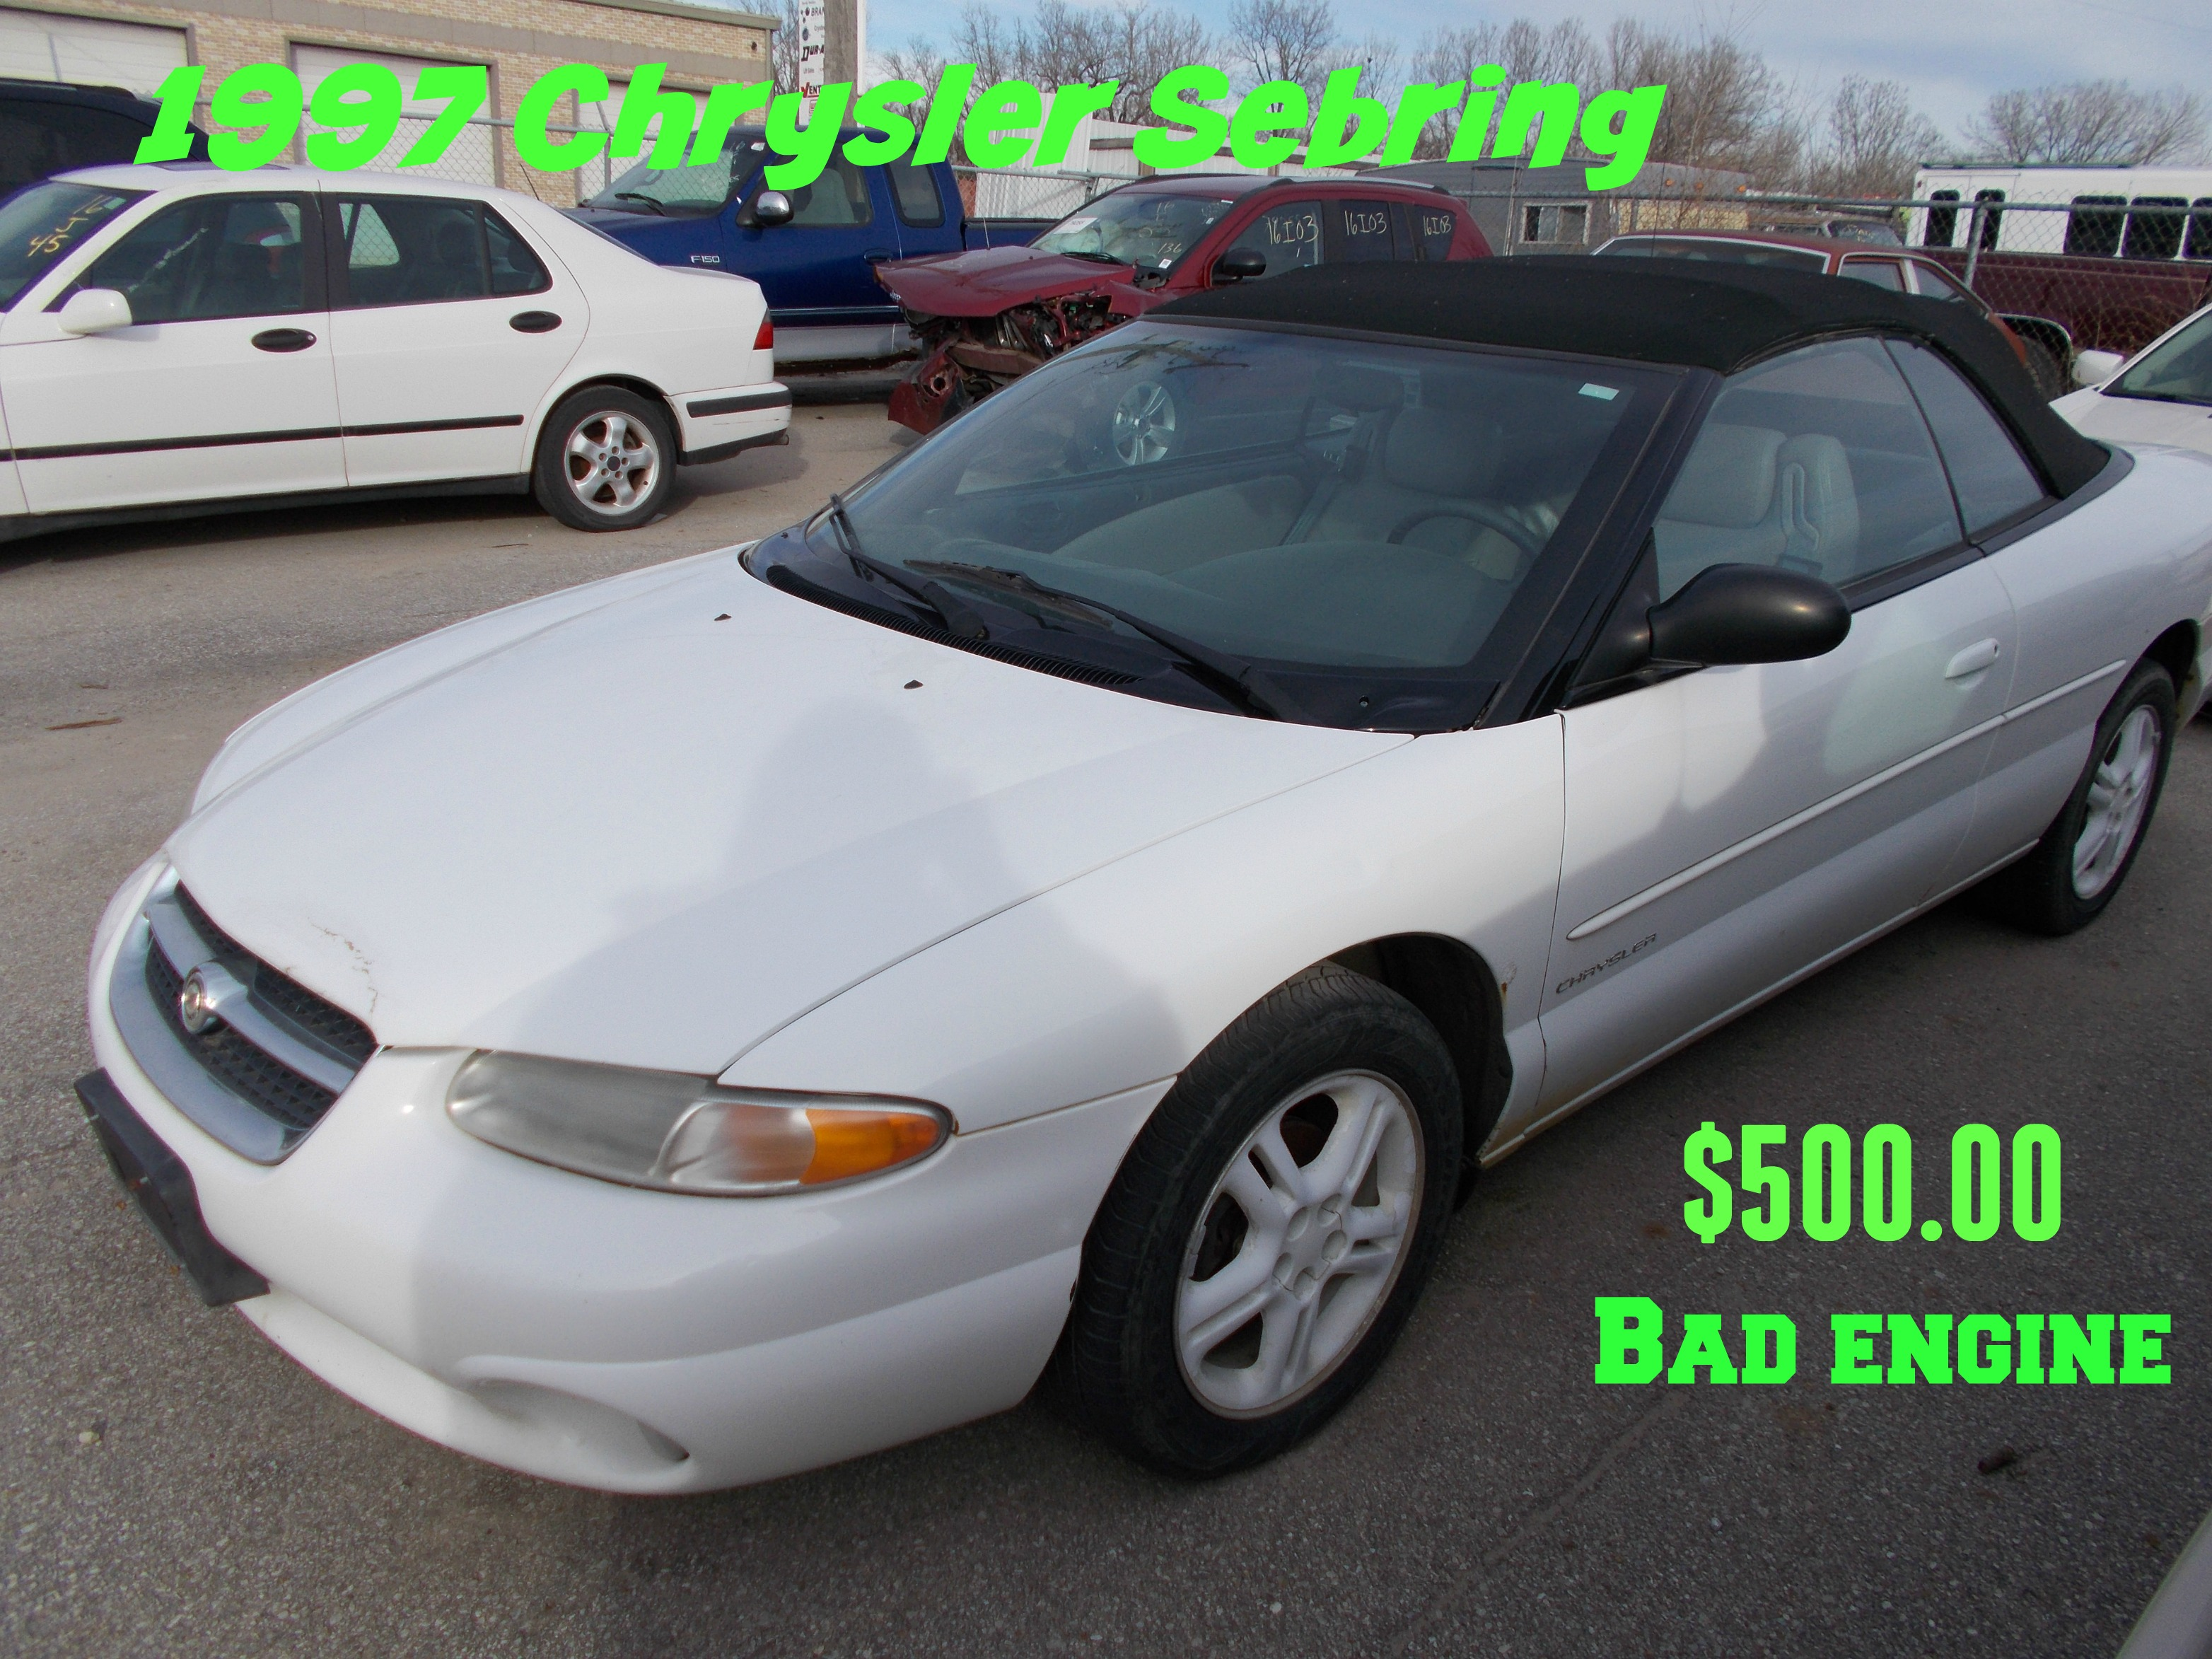 used sebring chrysler a auto limited all convertible vehicles big inventory parts i hardtop